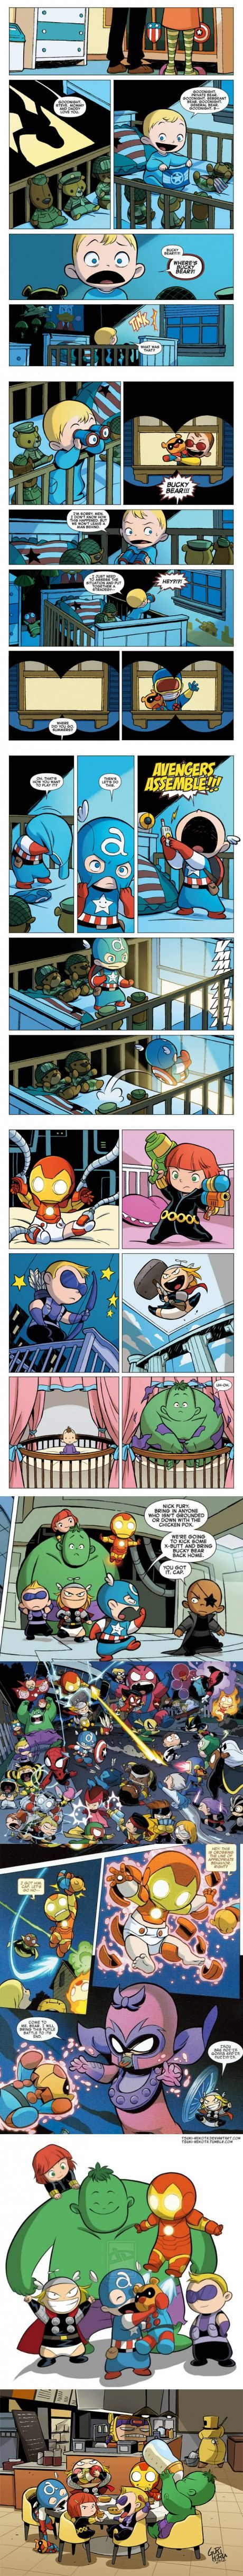 I found this adorable! Bucky Bear! And even Nick Fury is a baby. Iron Man has big round eyes of wonder and imagination. Unstoppable Thor is unstoppable!